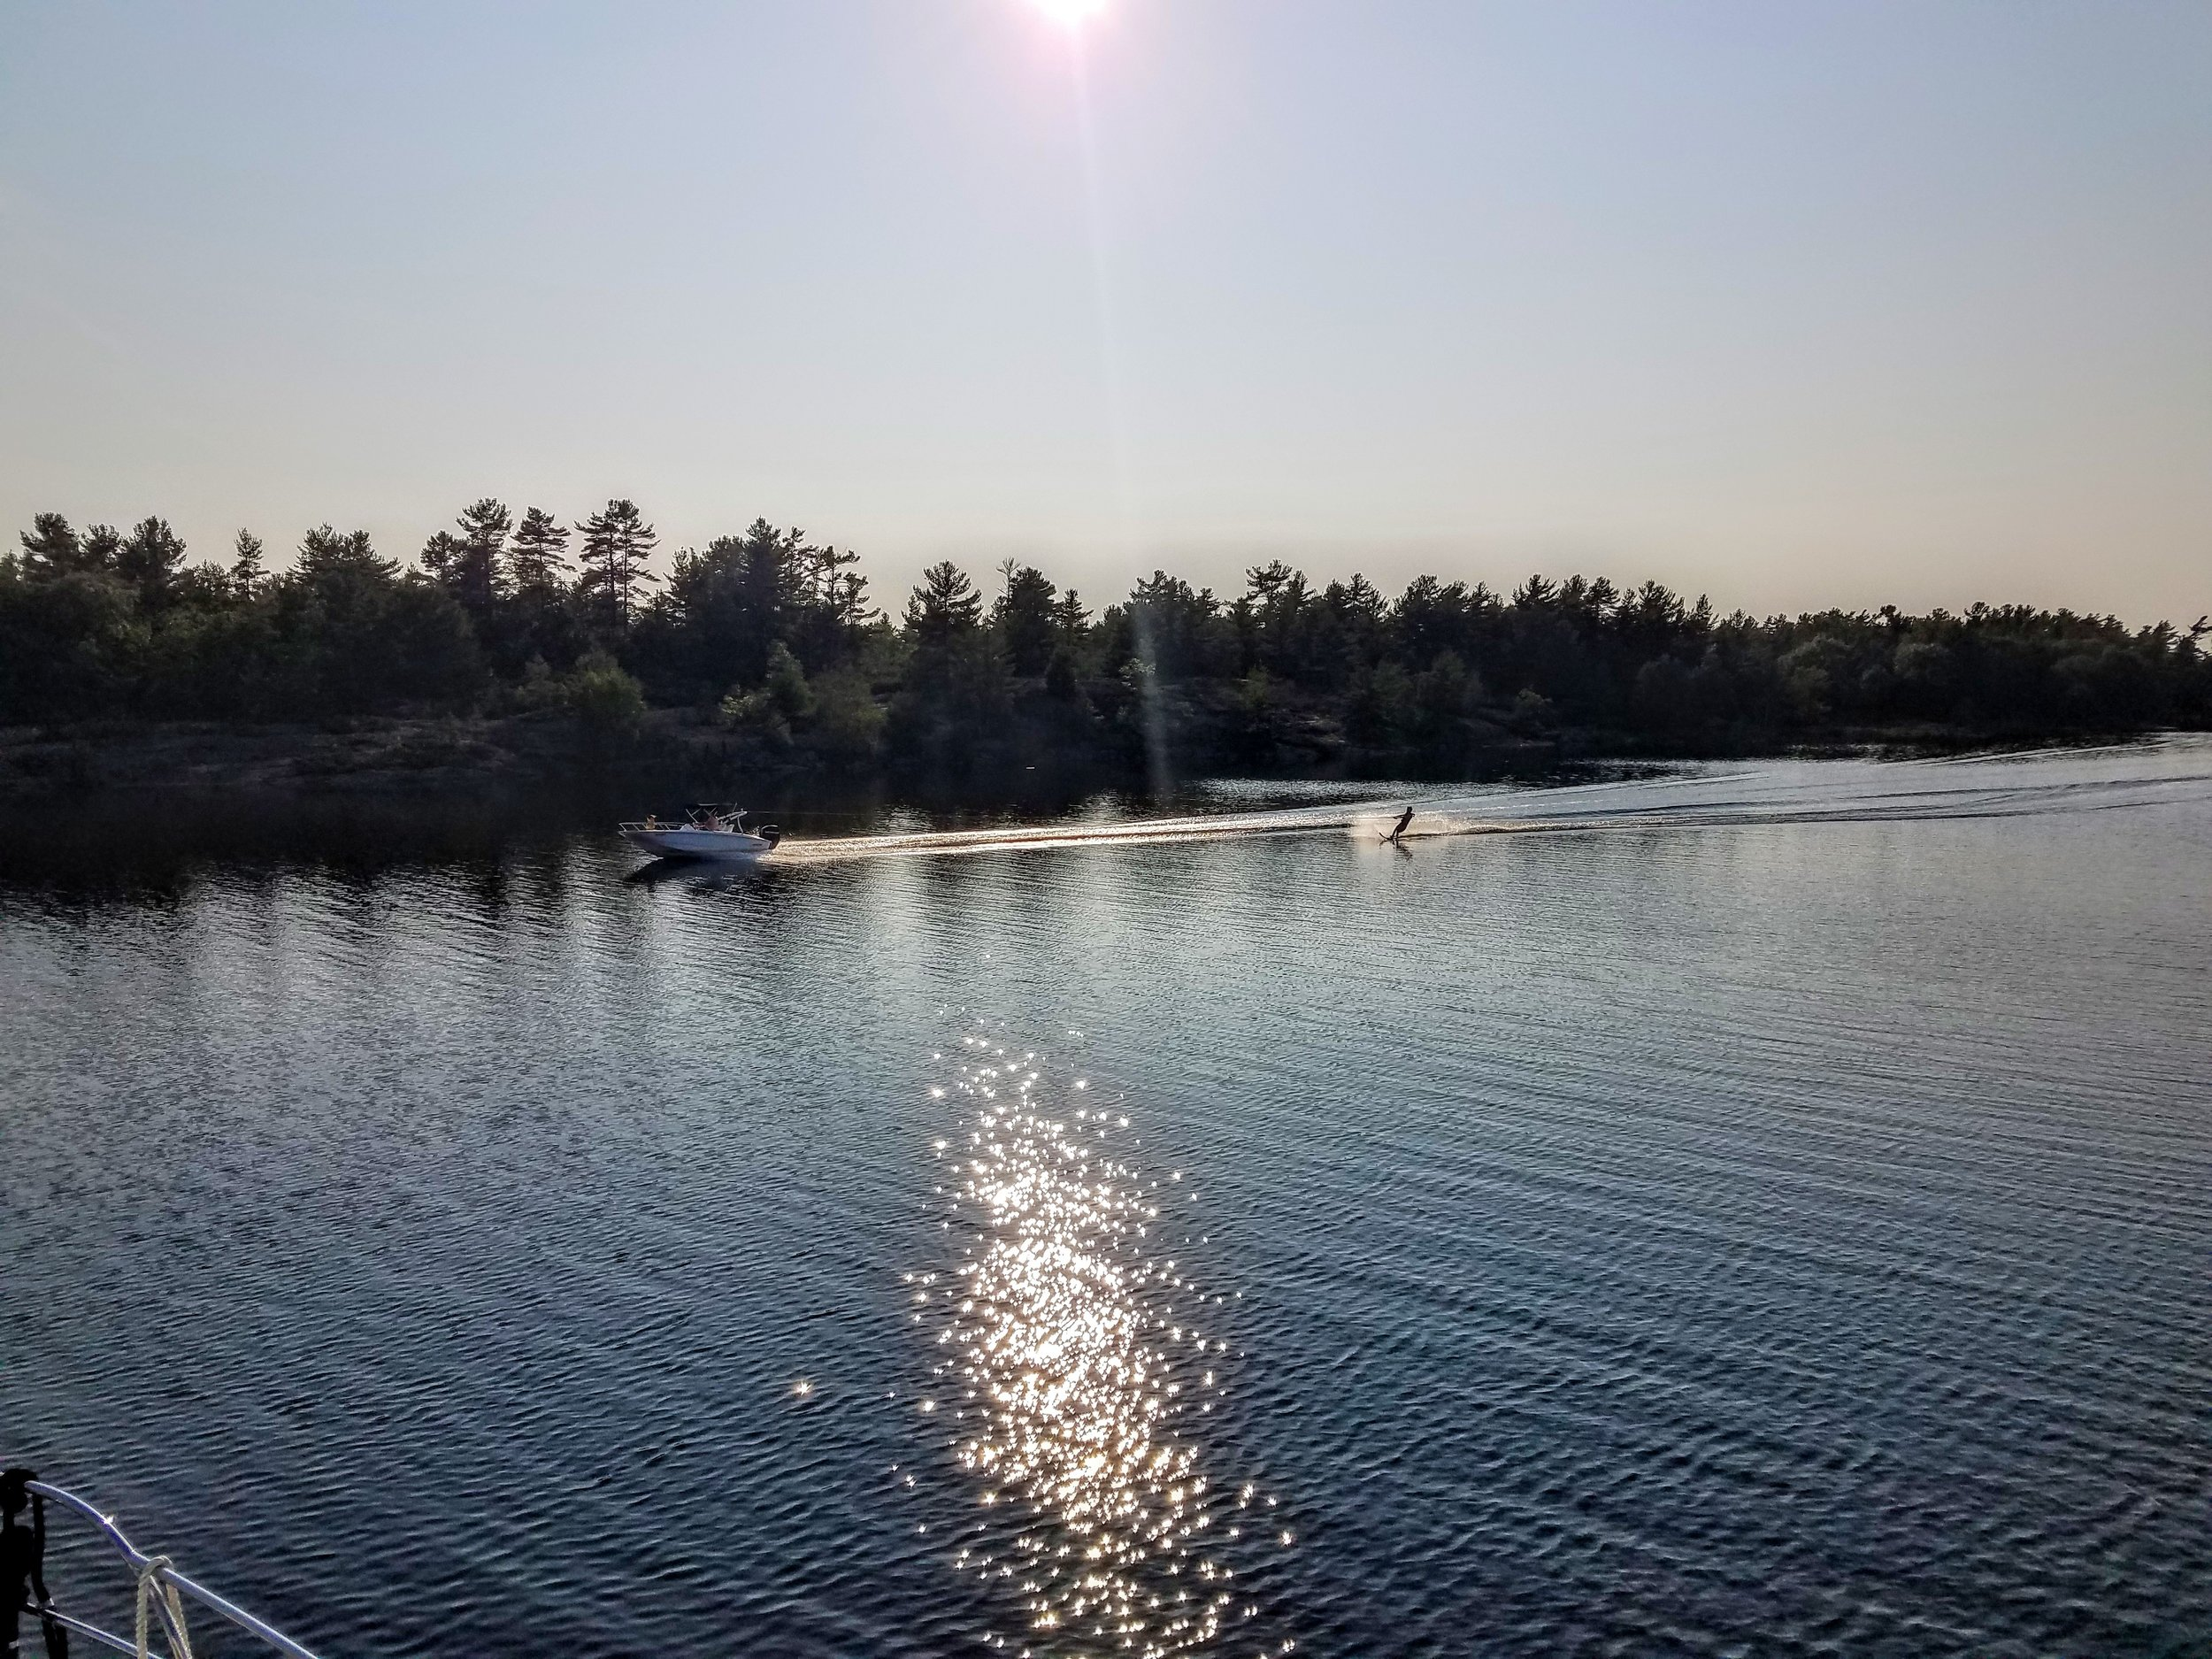 A perfect night to water ski on Long Bay